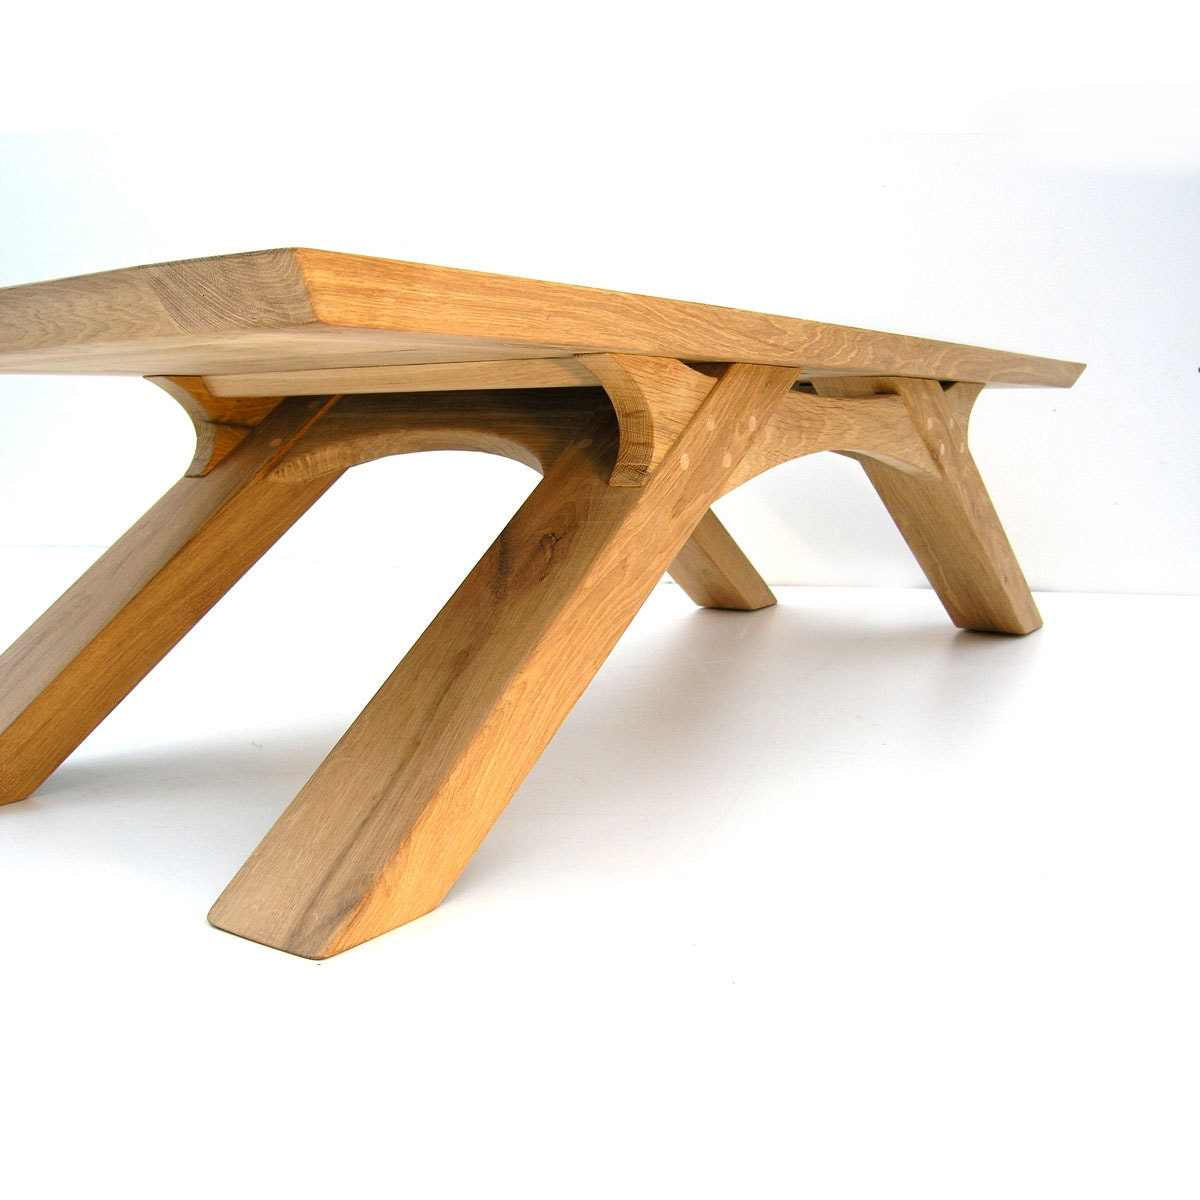 Arch Coffee Table Handmade In Sustainable French Oak